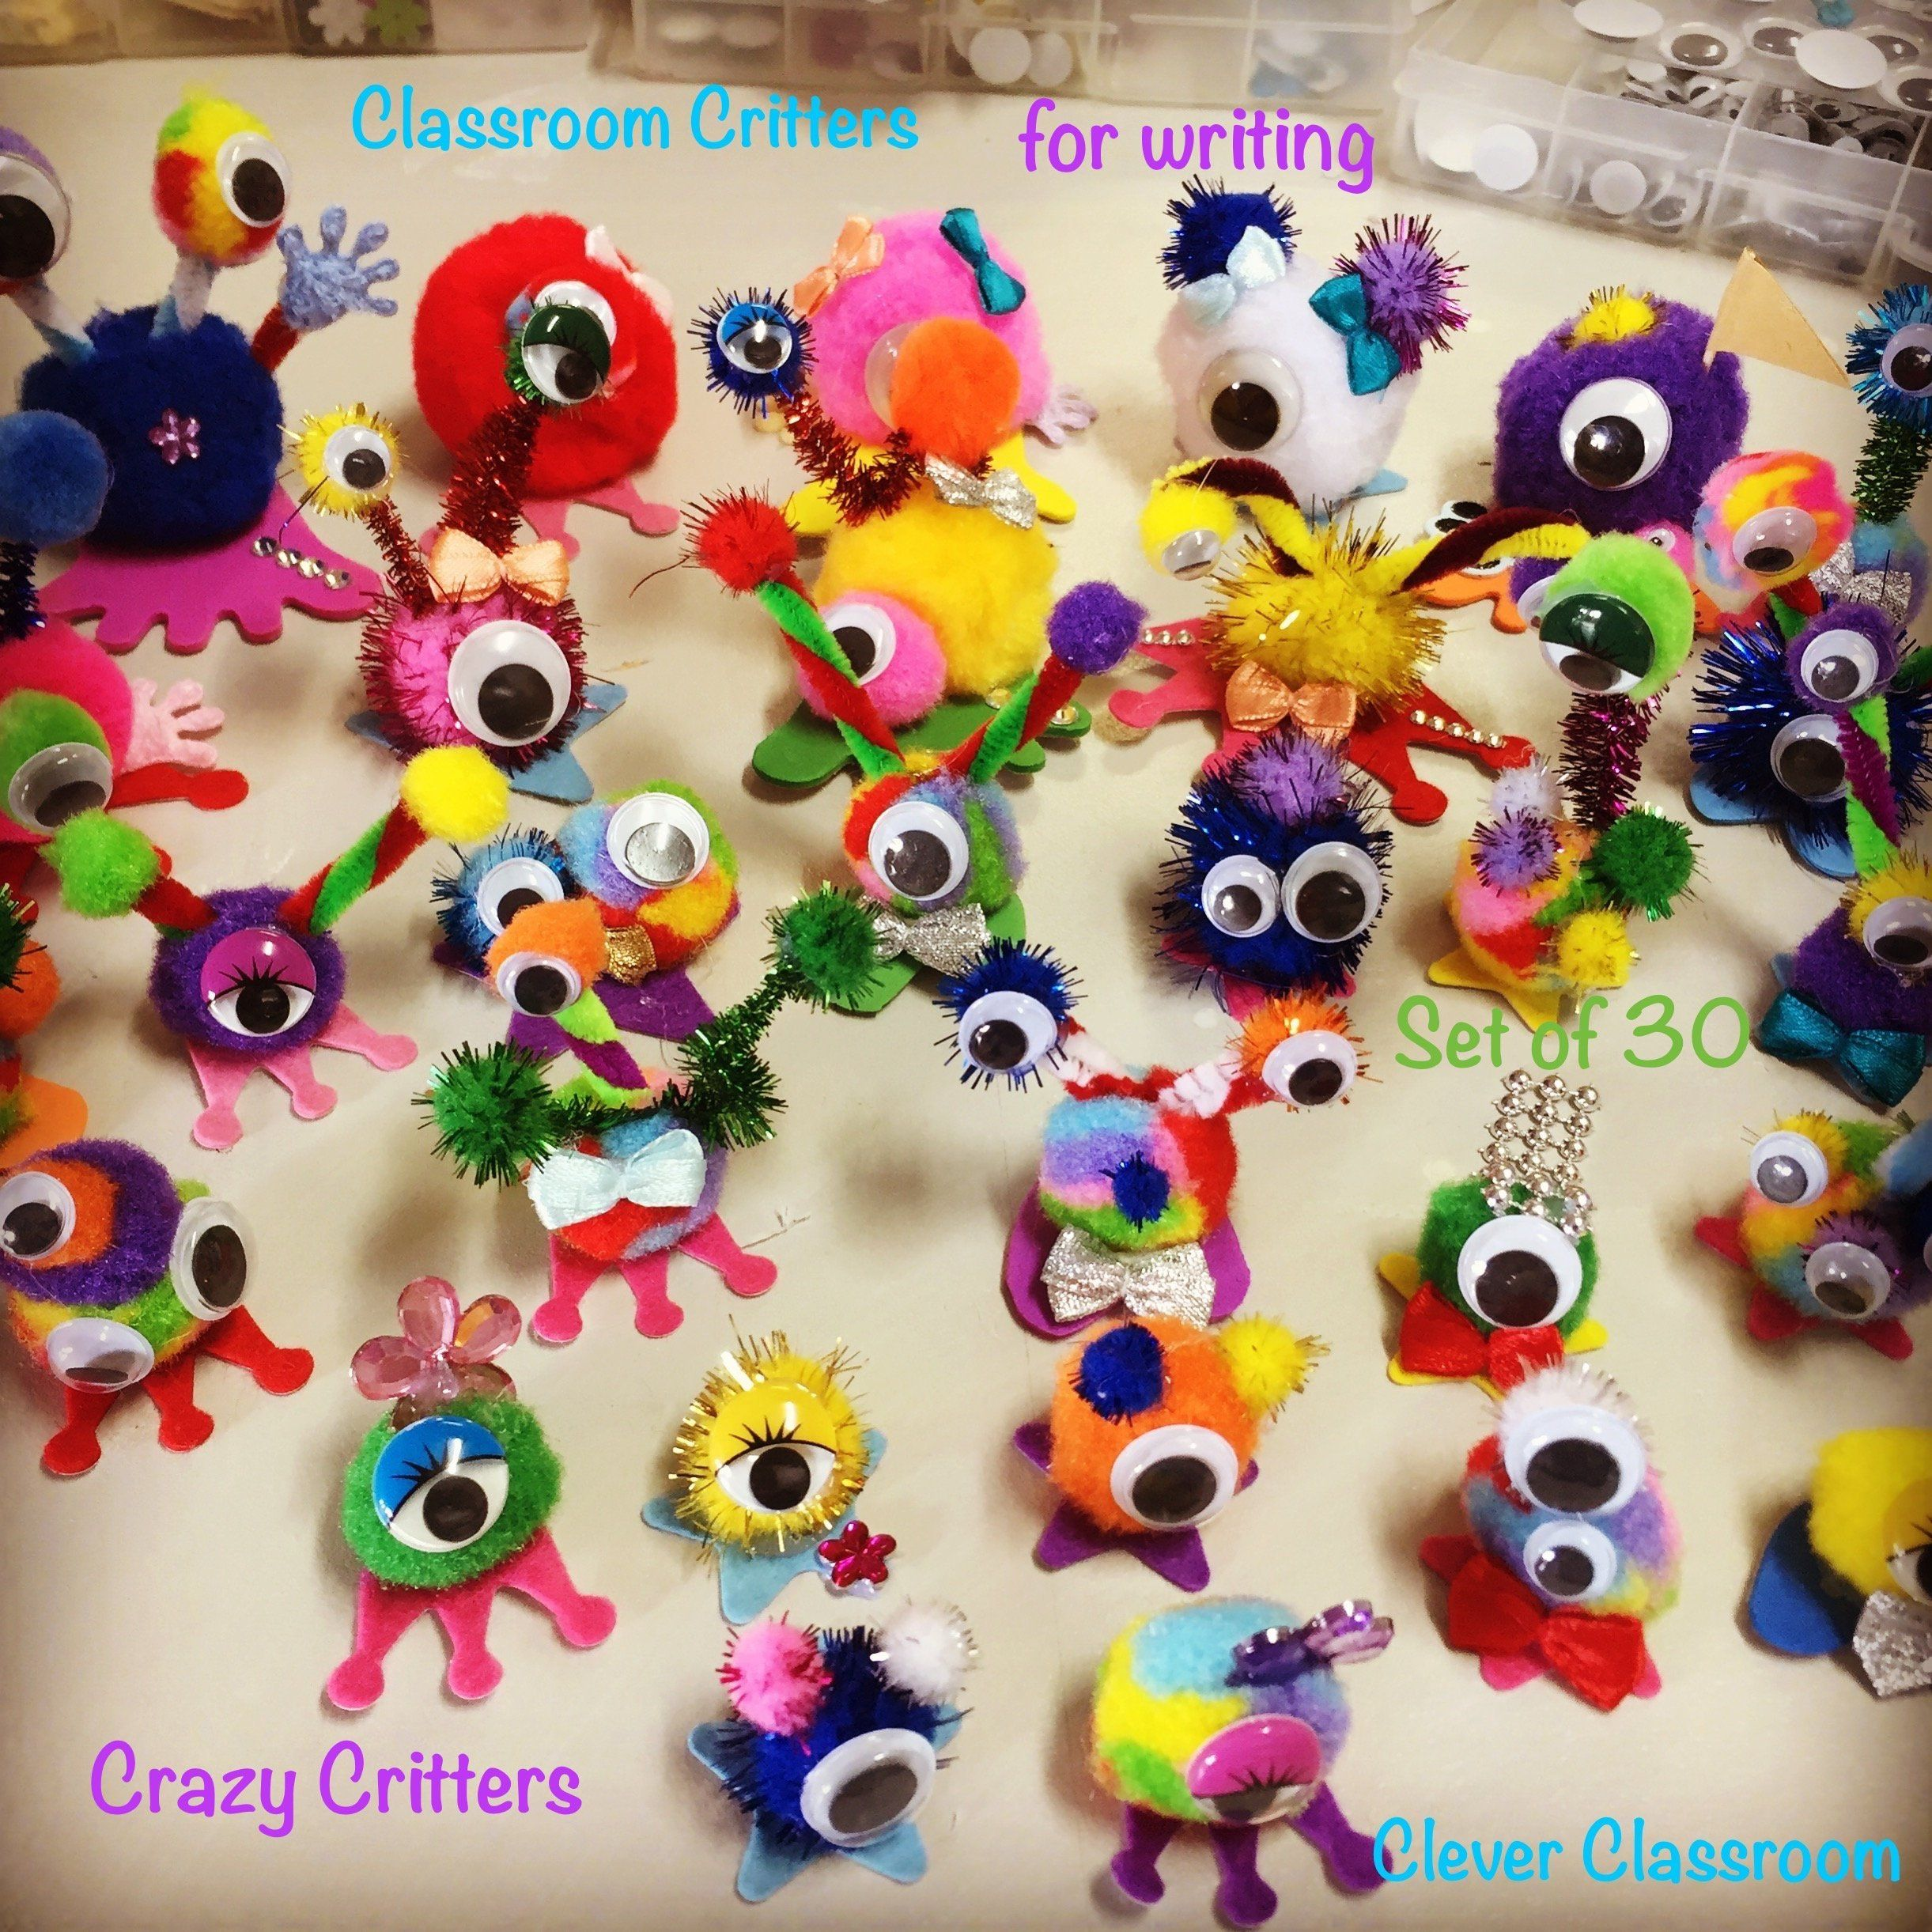 Classroom Crazy Critters - writing tool for early years - children tell the critter their story before they write #quietcritters